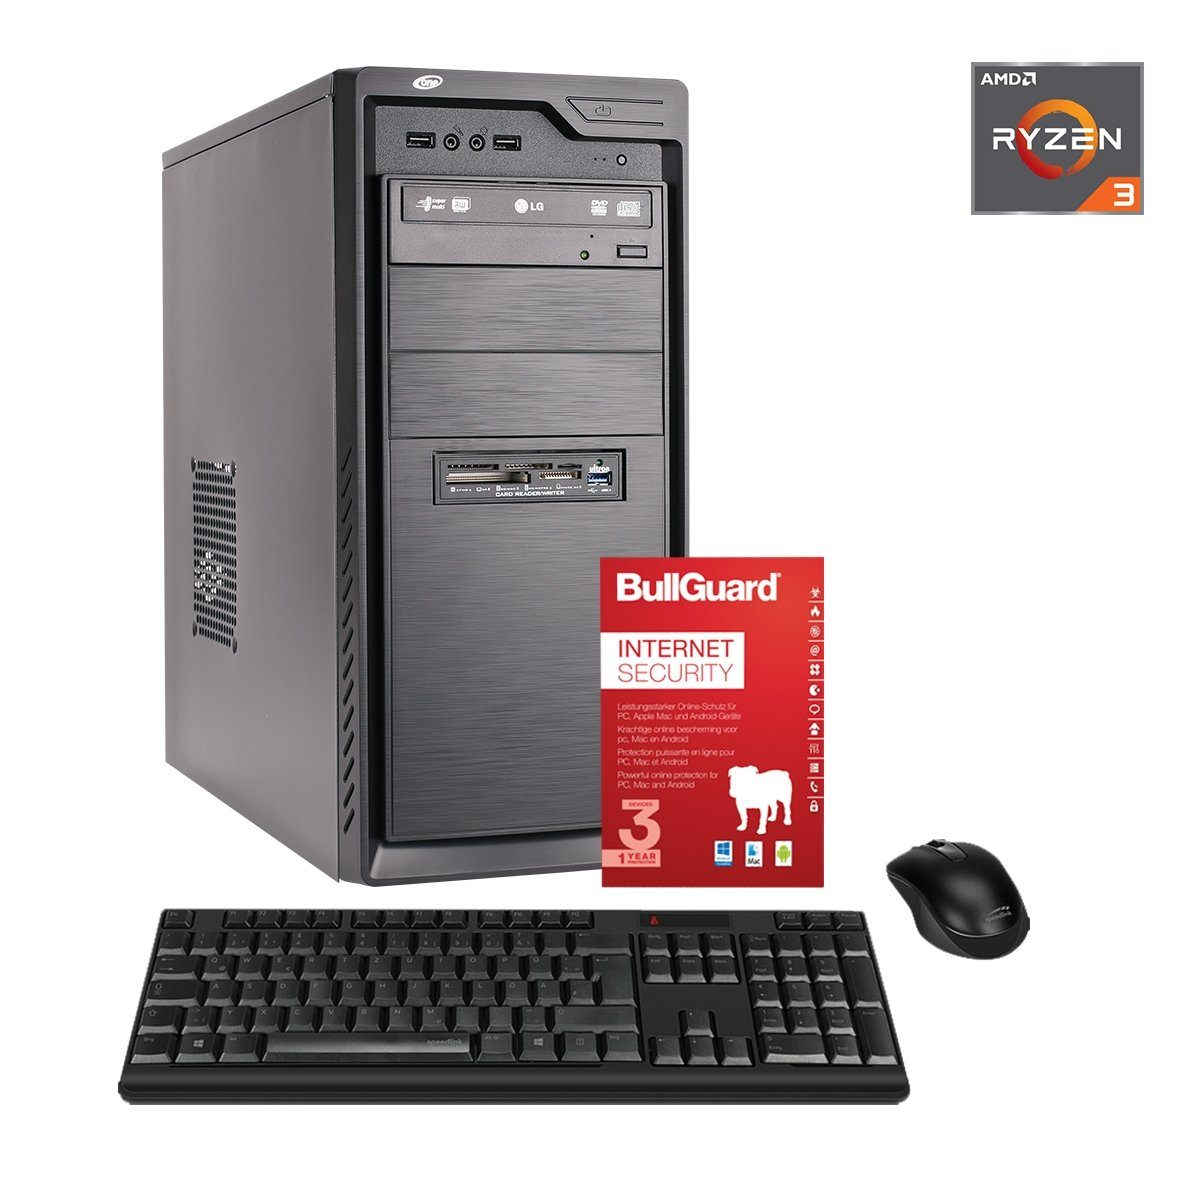 ONE PC, Ryzen 3 2200G, Radeon RX Vega 8 Graphics, 4GB DDR4 SDRAM »Office PC 44681«